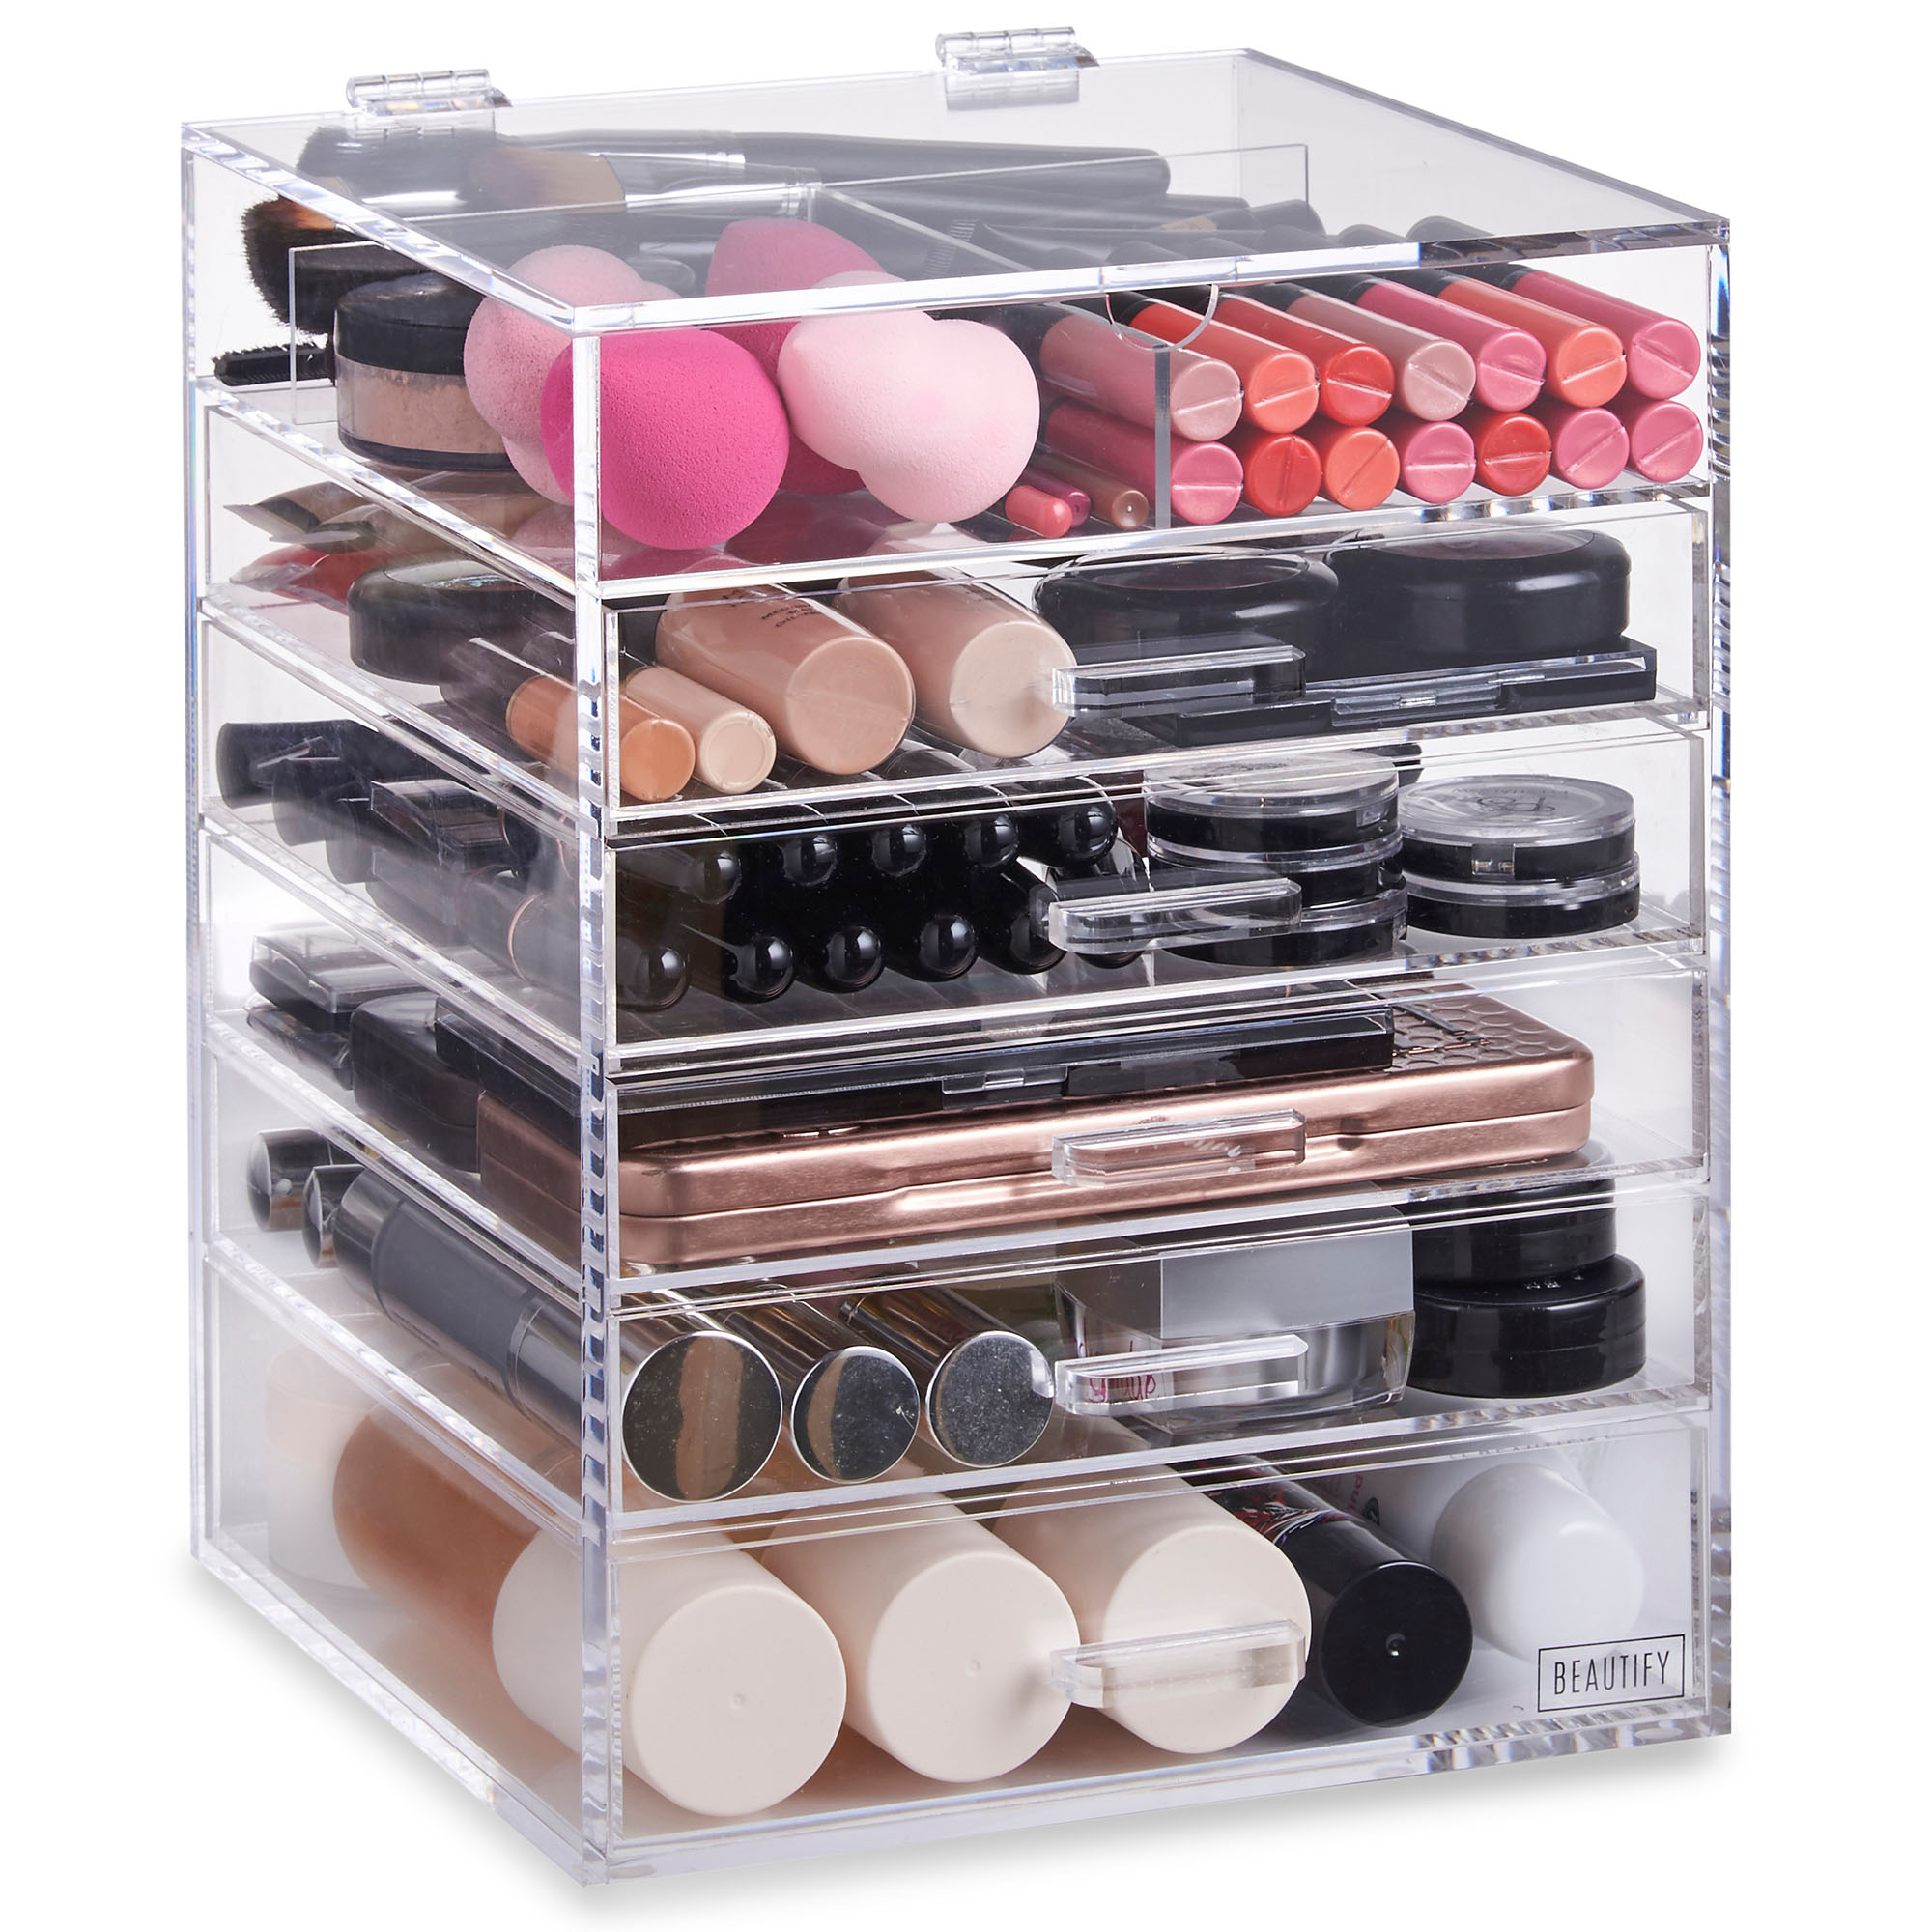 Beautify 6 Tier Clear Acrylic Cosmetic Makeup Organiser ...